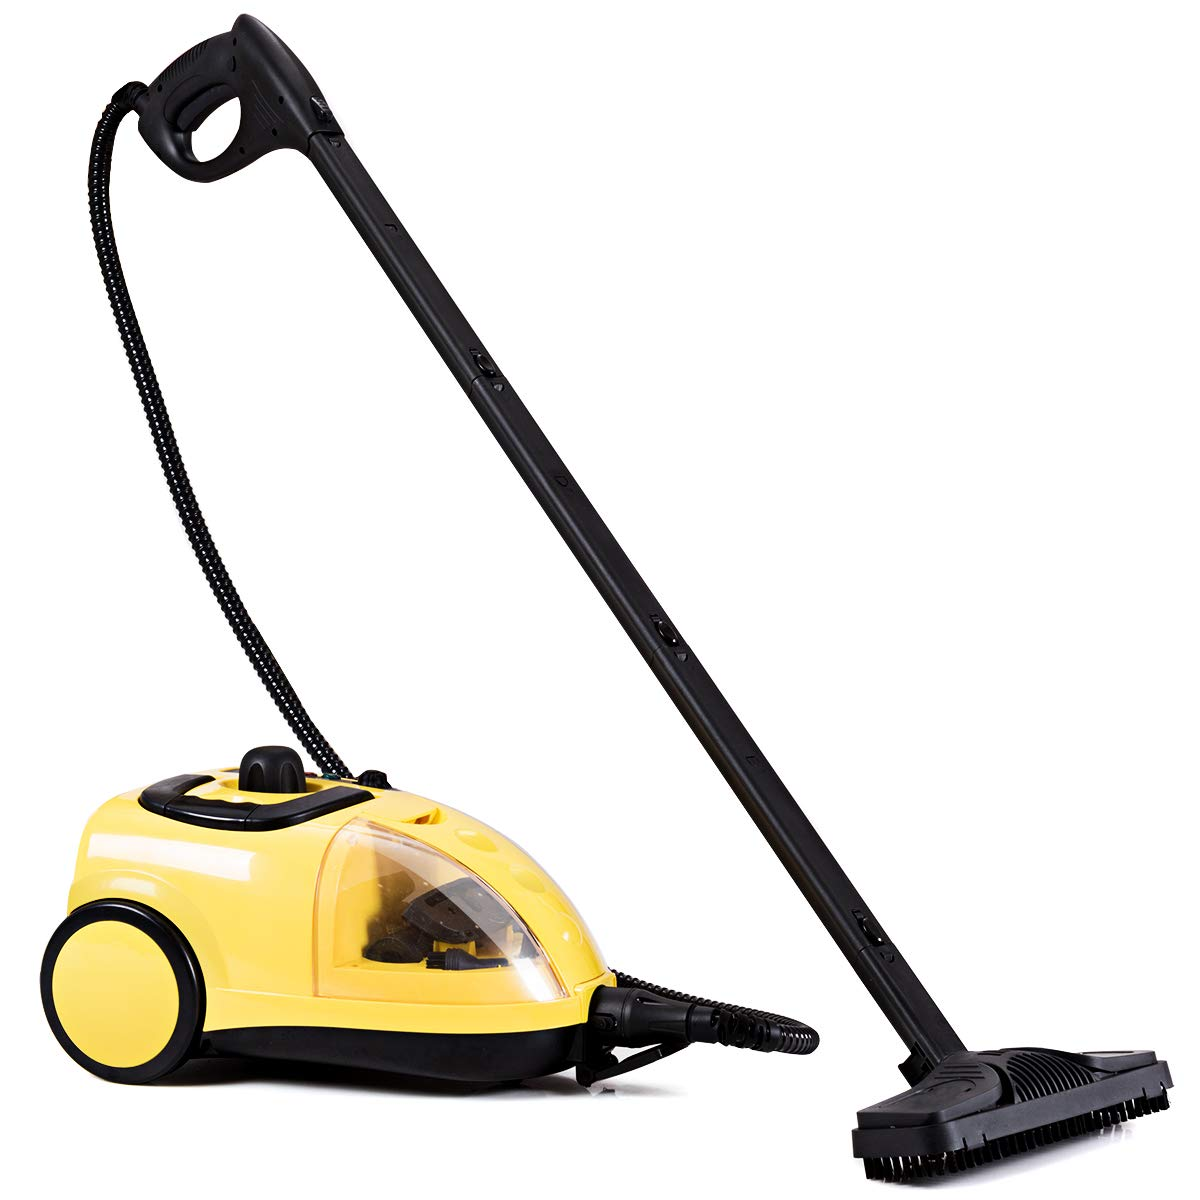 COSTWAY Steam Cleaner, Adjustable Heavy Duty Professional Steam Cleaning, All-Natural, Chemical-Free Cleaning Machine-Included 17 Accessories, Ideal Floors, Windows, 1500W